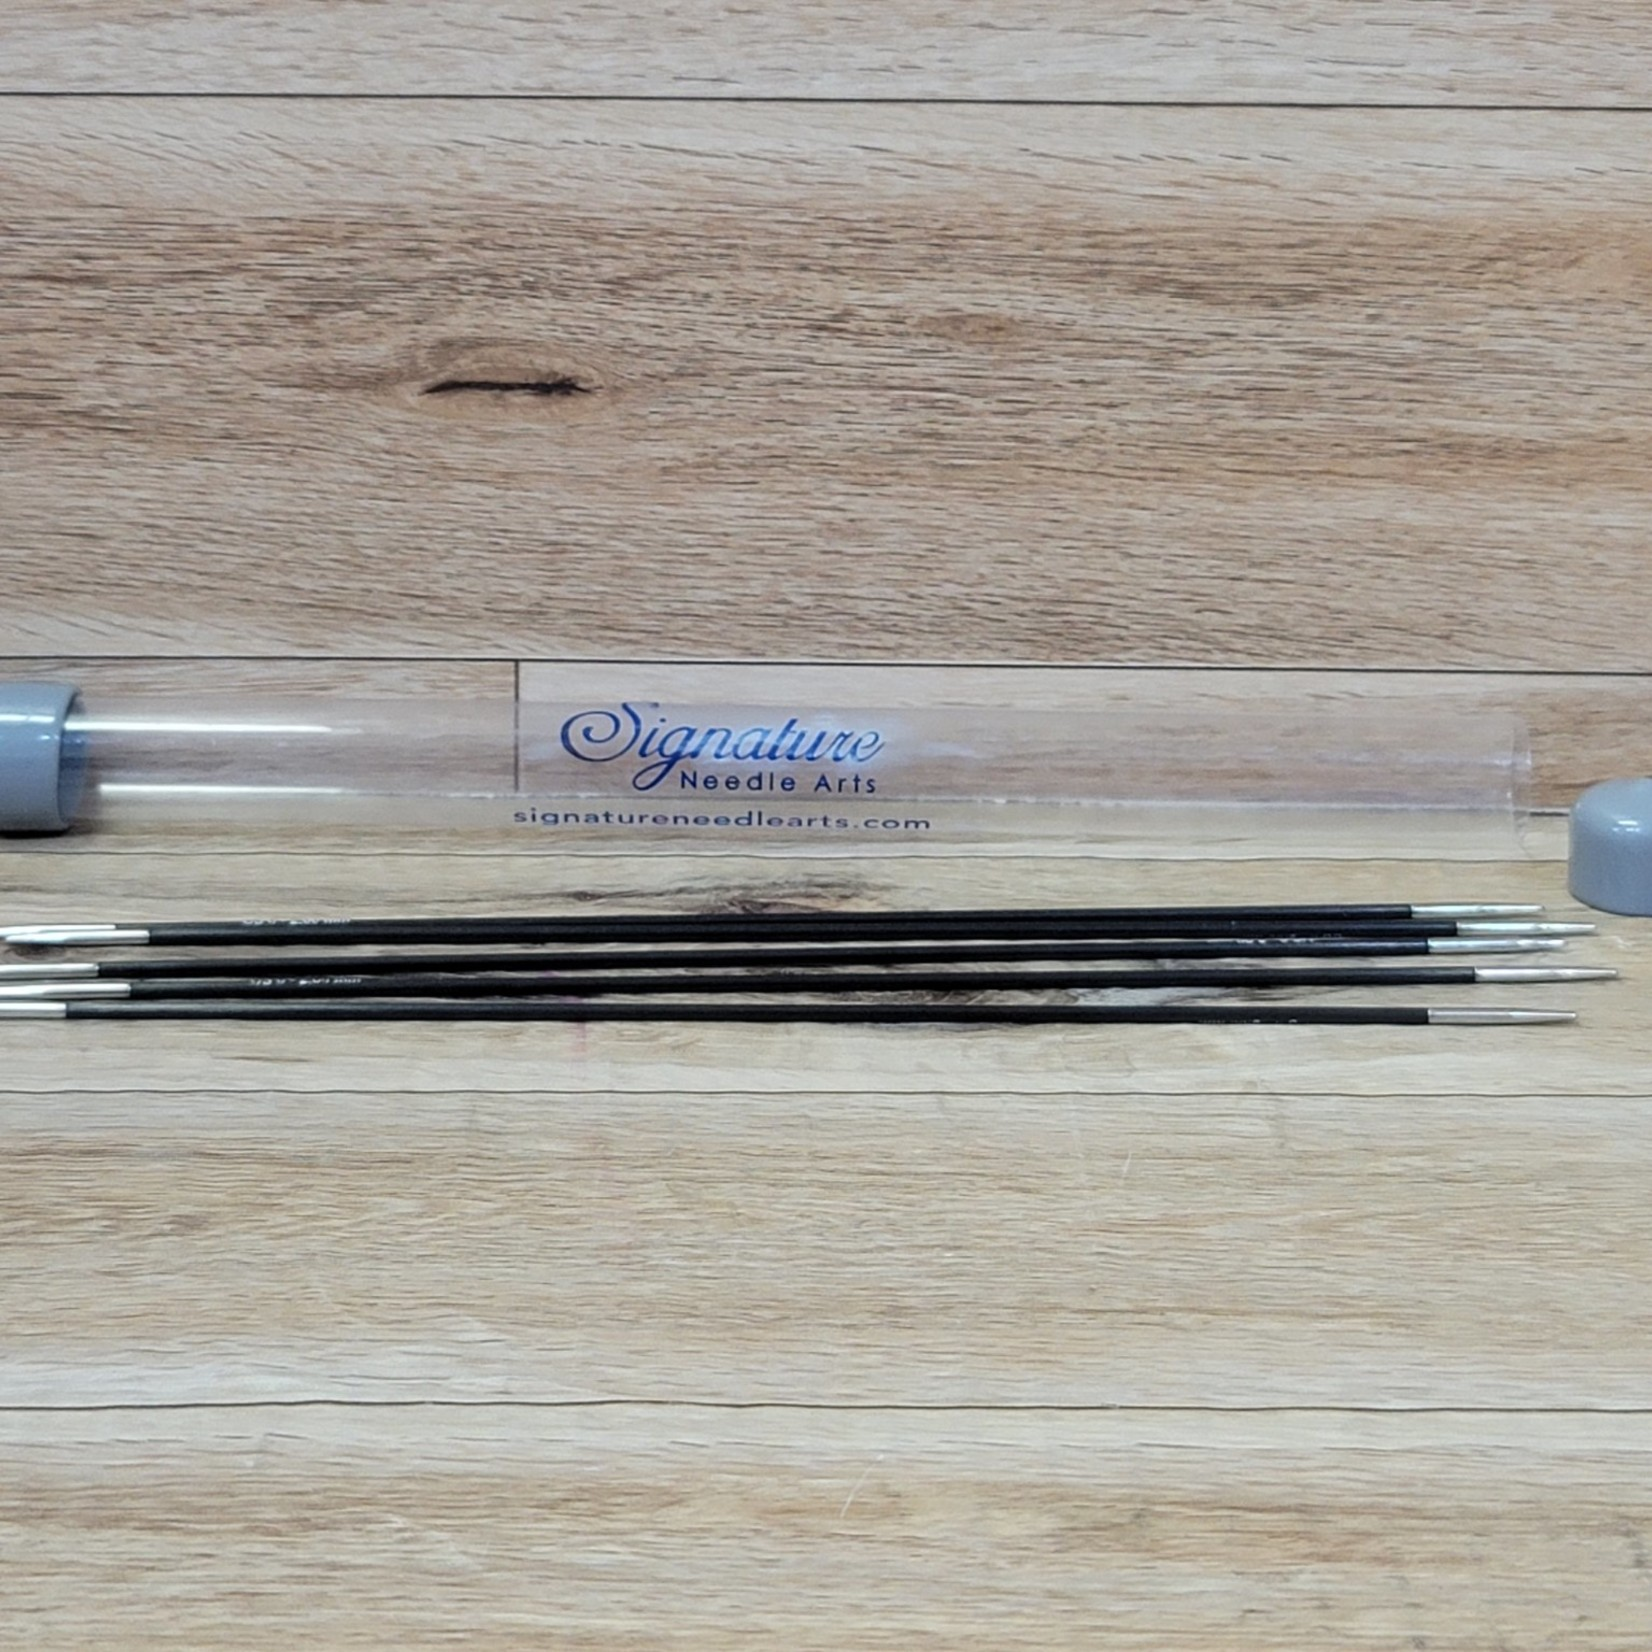 Knitter's Pride Karbonz -   Set of 5 double pointed knitting needles - US 1 - 2.25mm